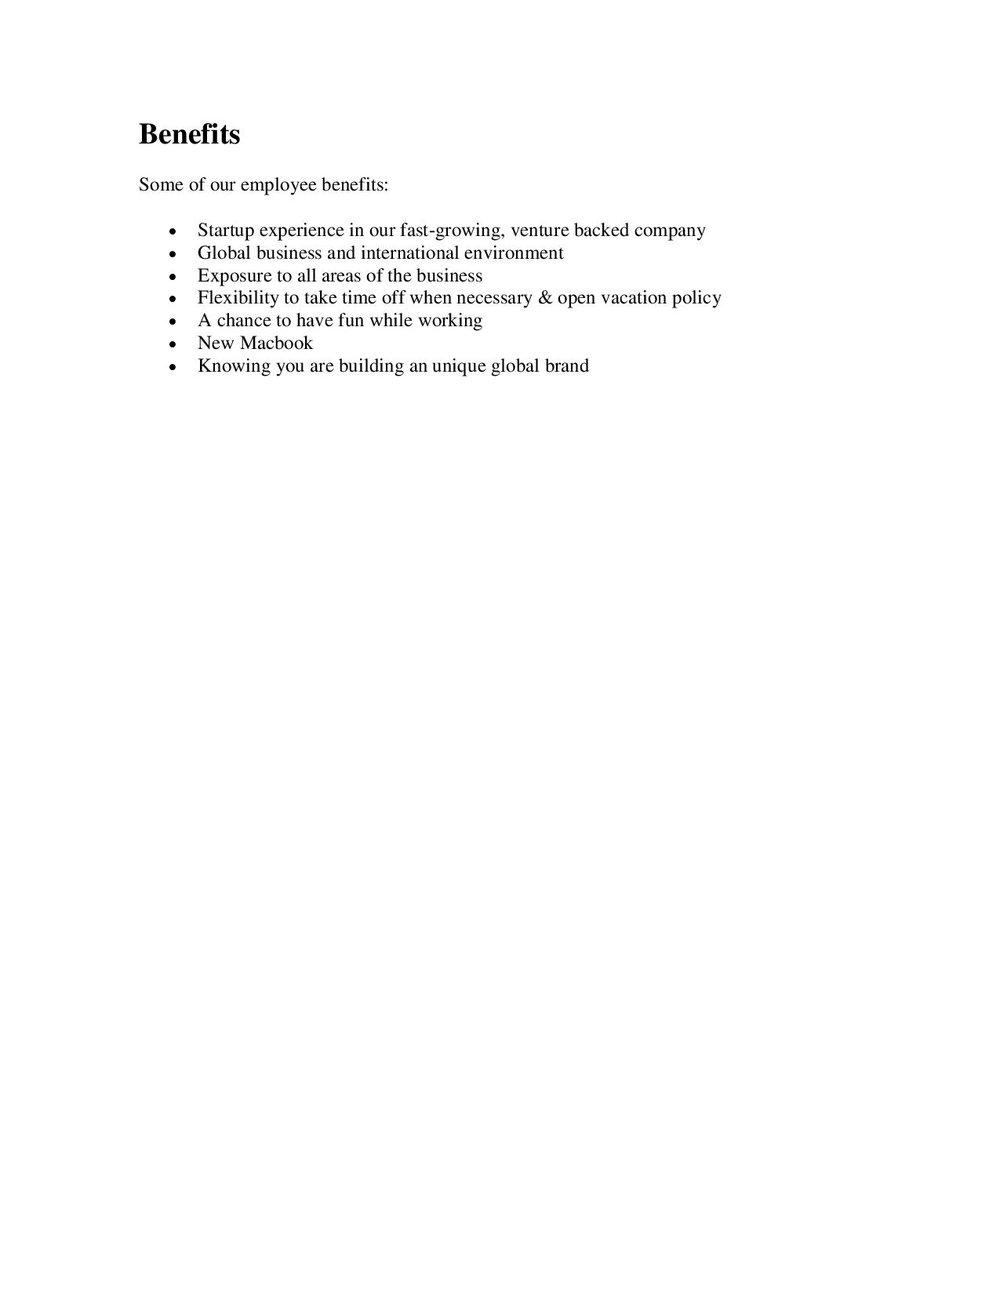 Job Description - Inside Sales Intern-page-002.jpg